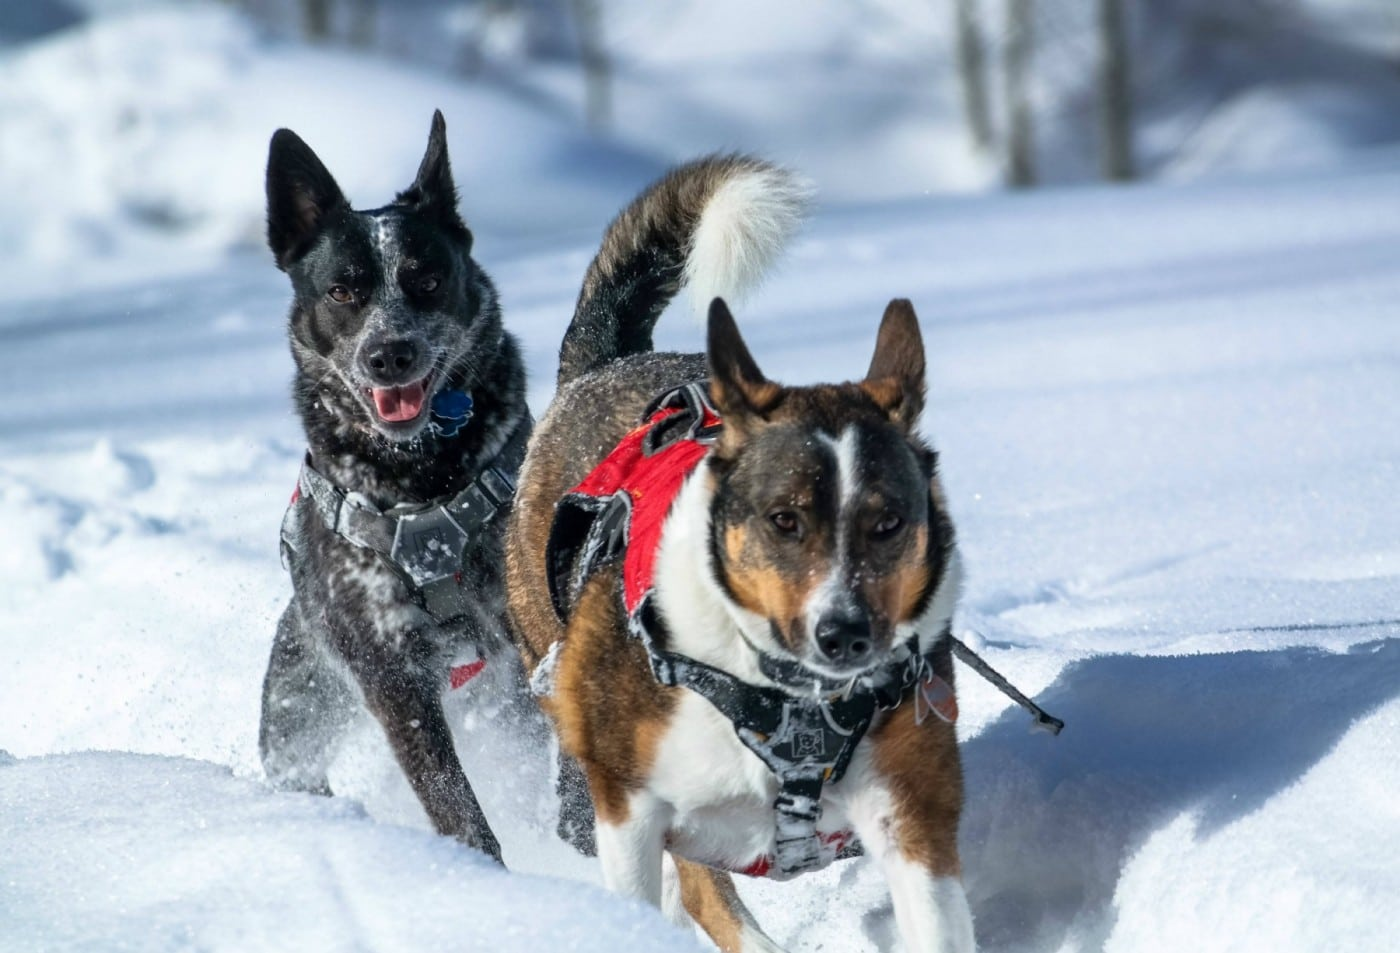 2 dogs running in the snow